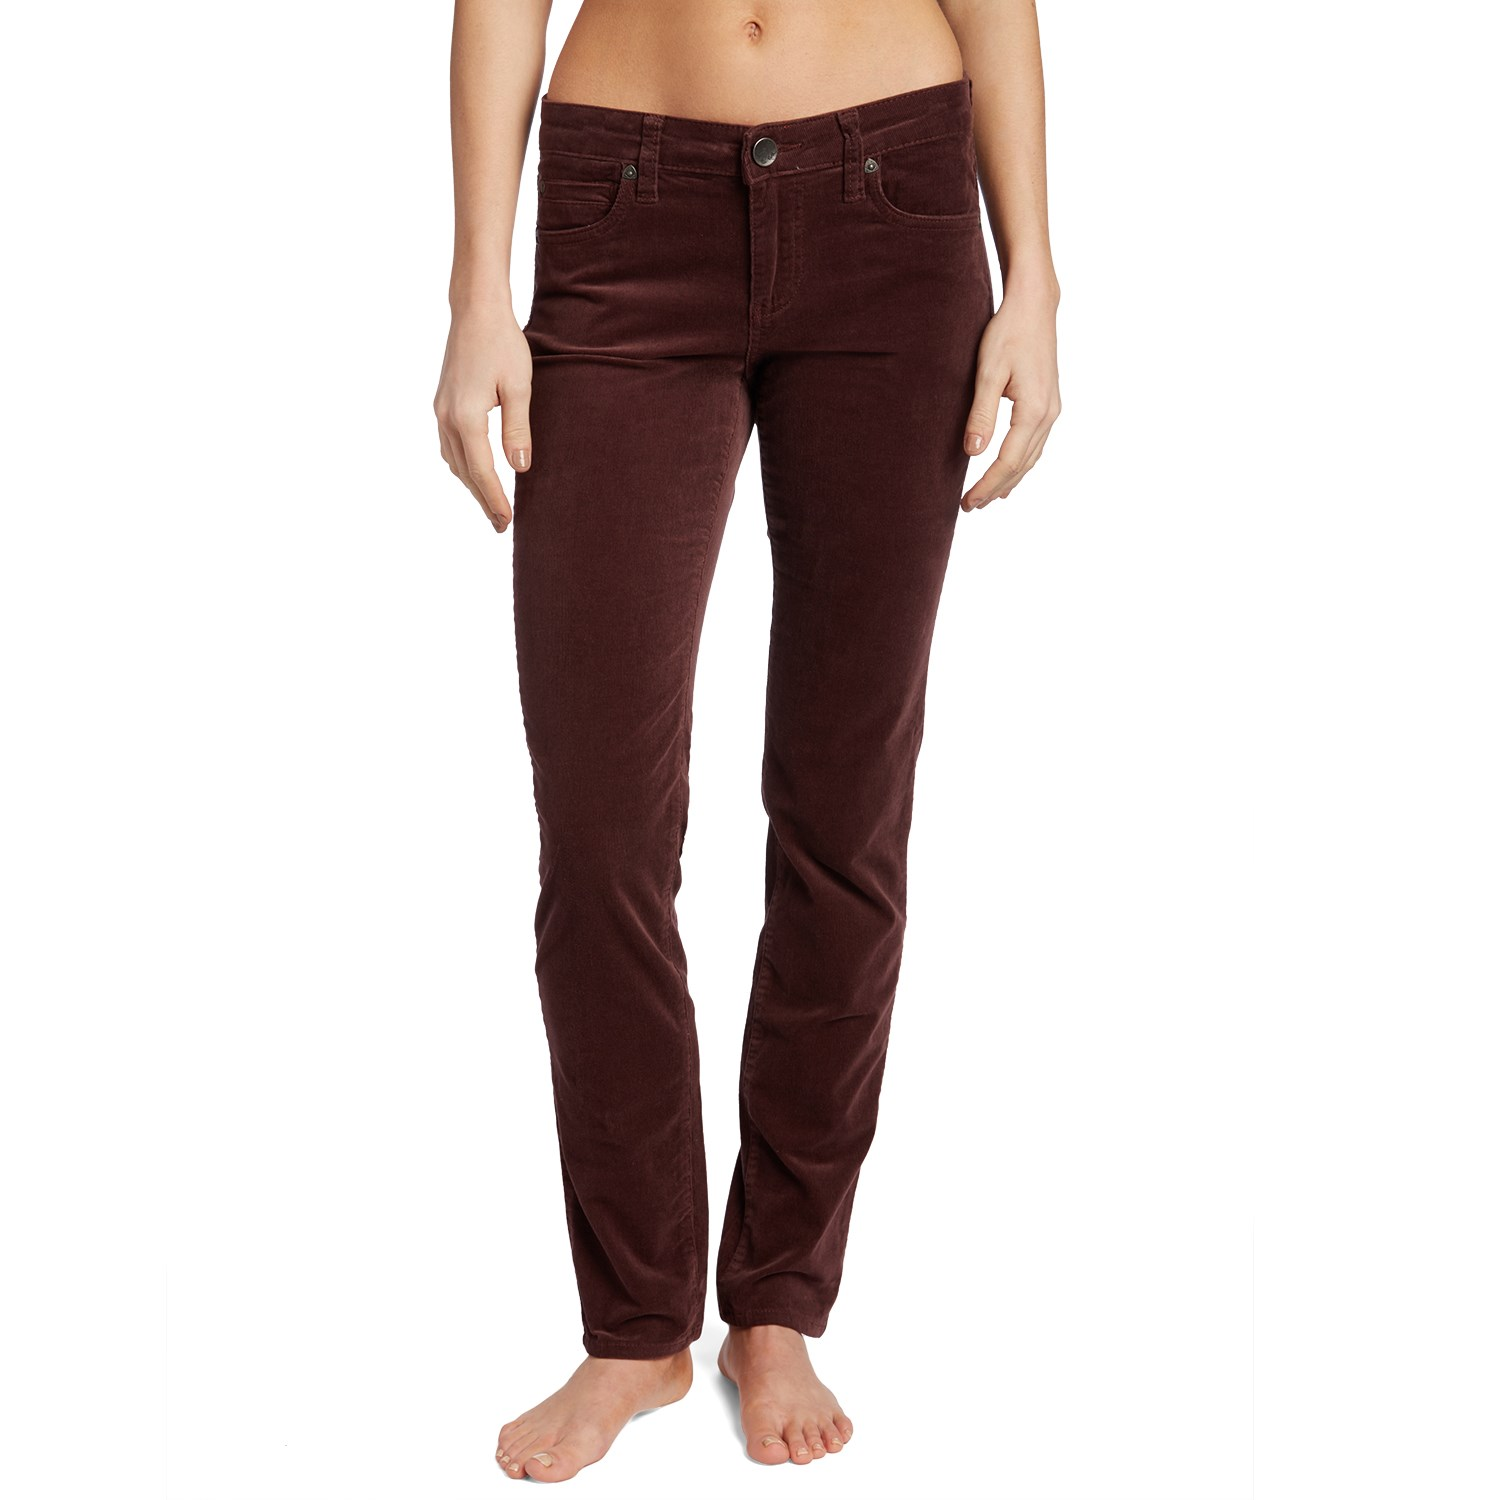 KUT from the Kloth Diana Skinny Corduroy Pants - Women's | evo outlet